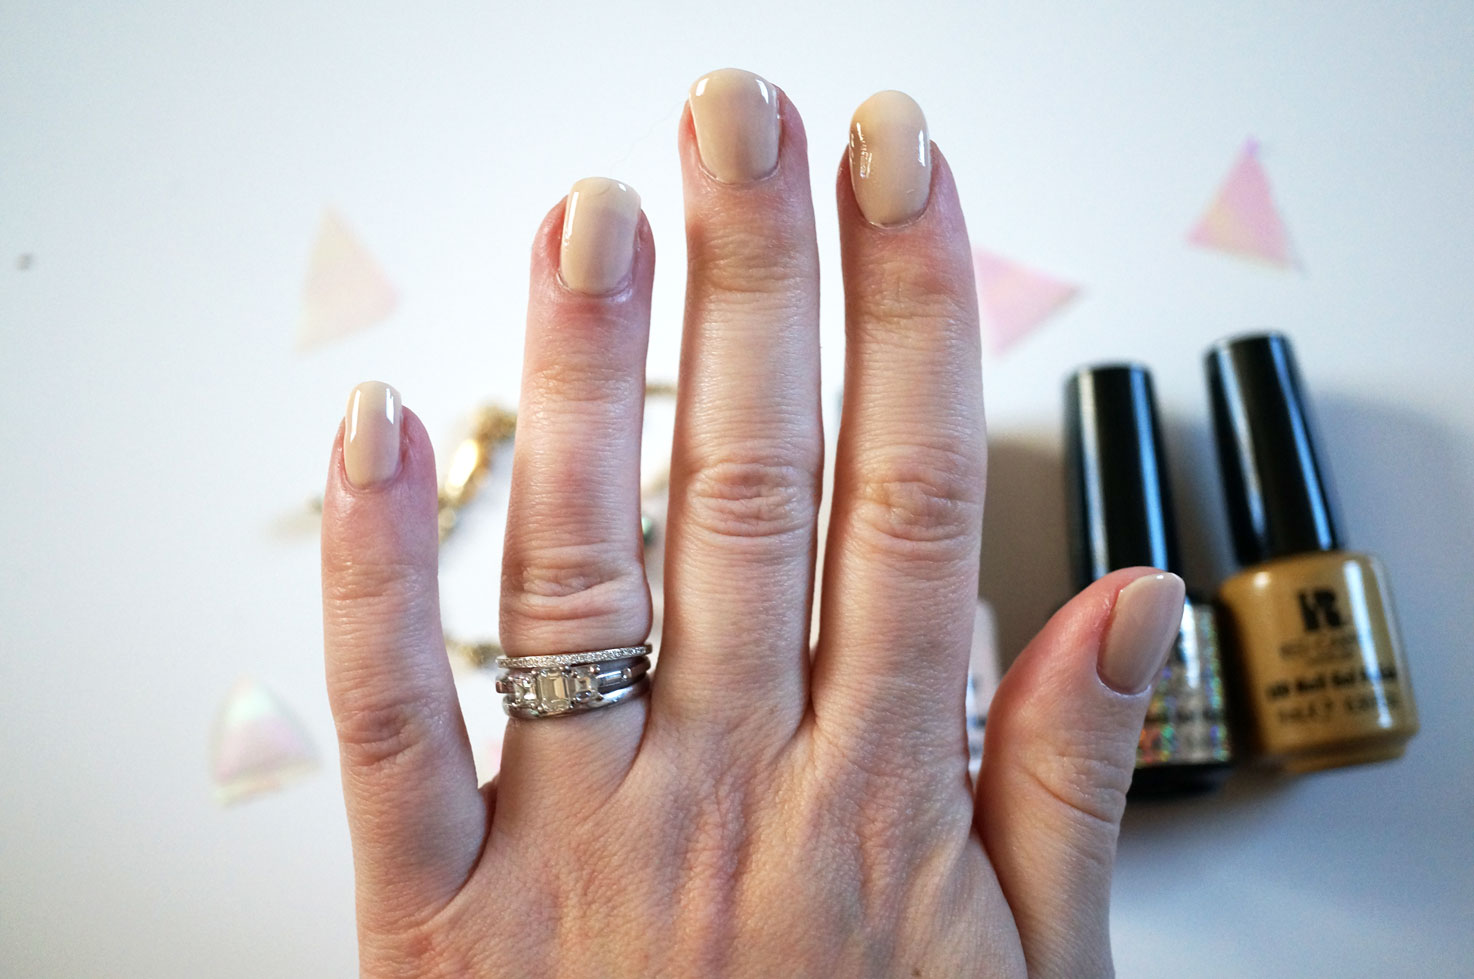 New Nails & Arm Candy! - Thou Shalt Not Covet...